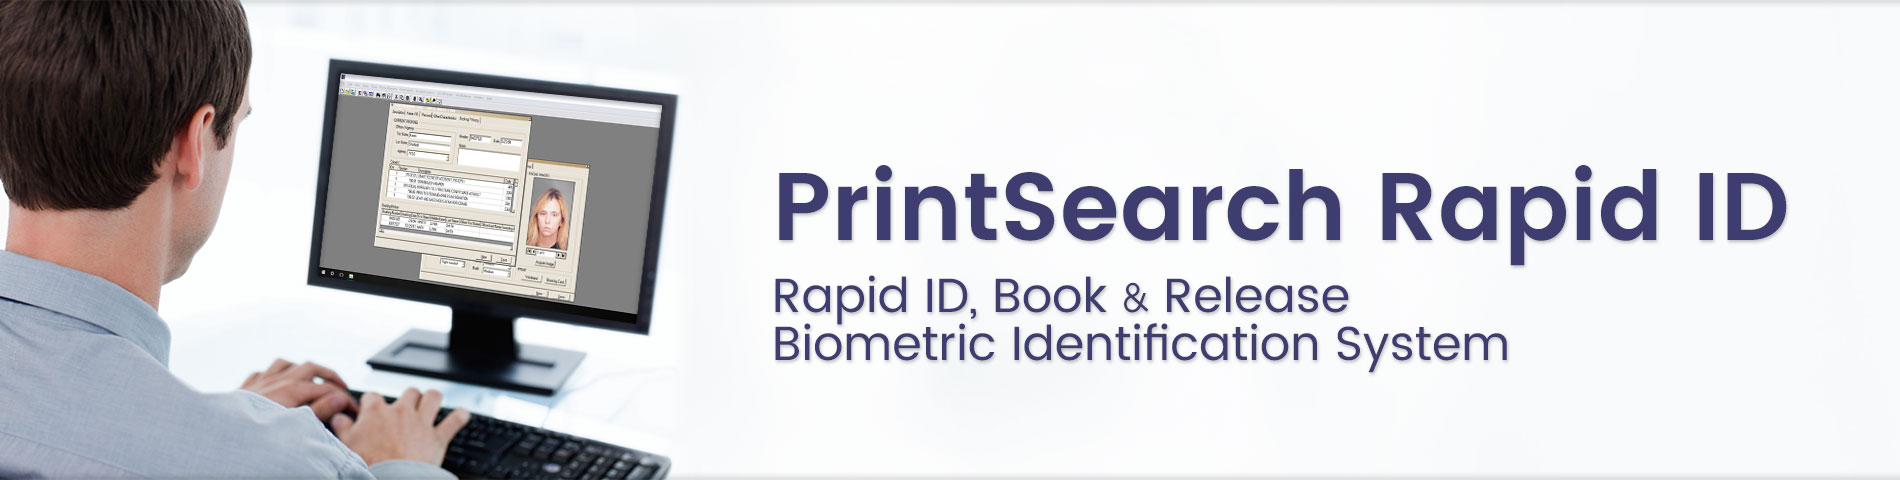 PrintSearch Rapid ID